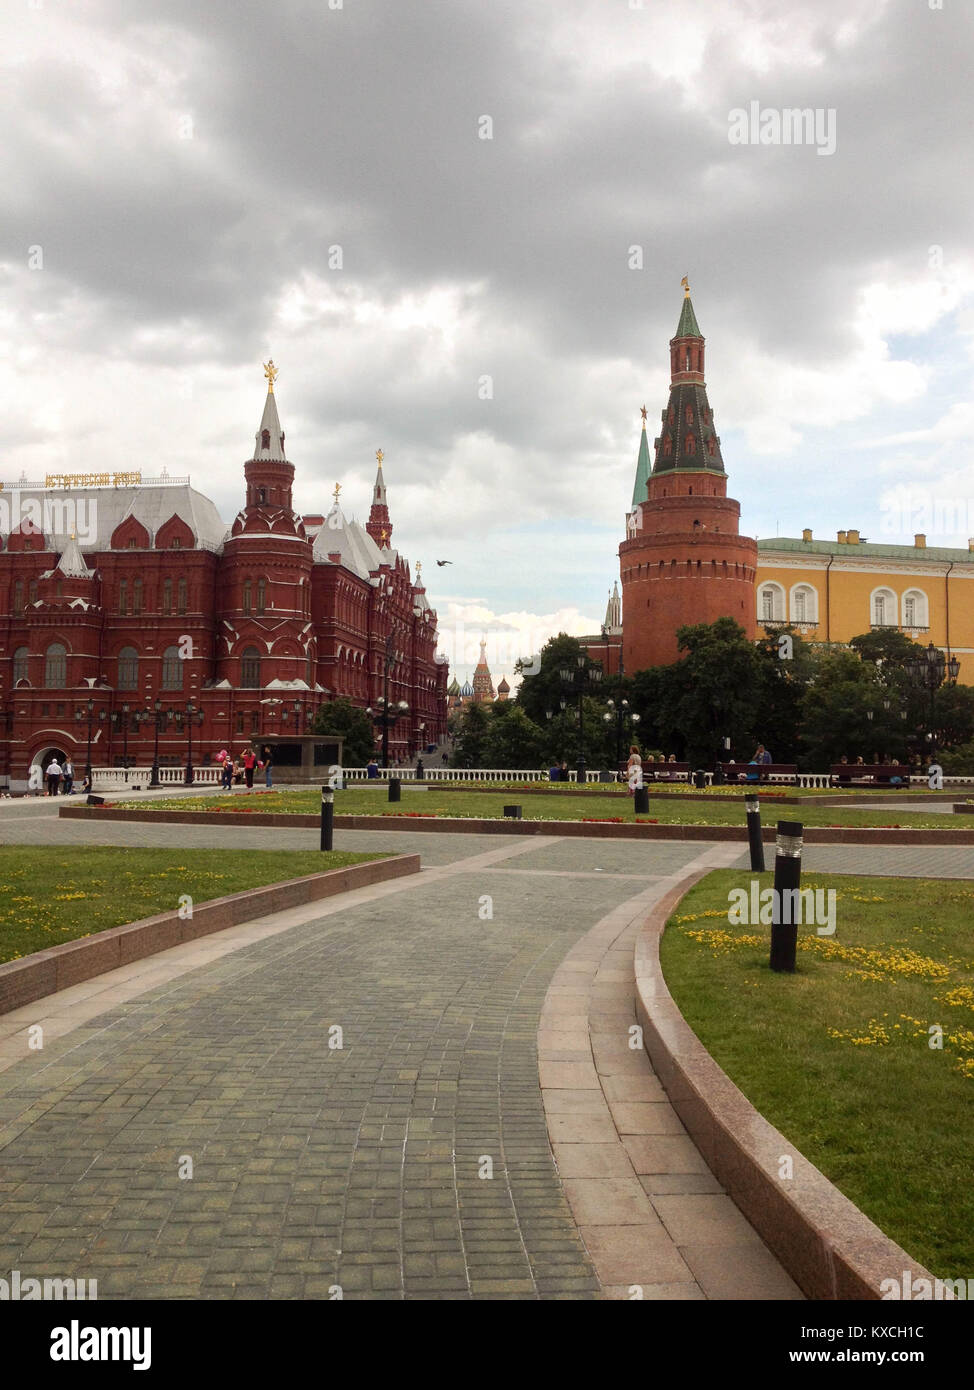 Outskirts view of part of the Red Square with two towers and Saint Basil's far off in the background, with stone - Stock Image